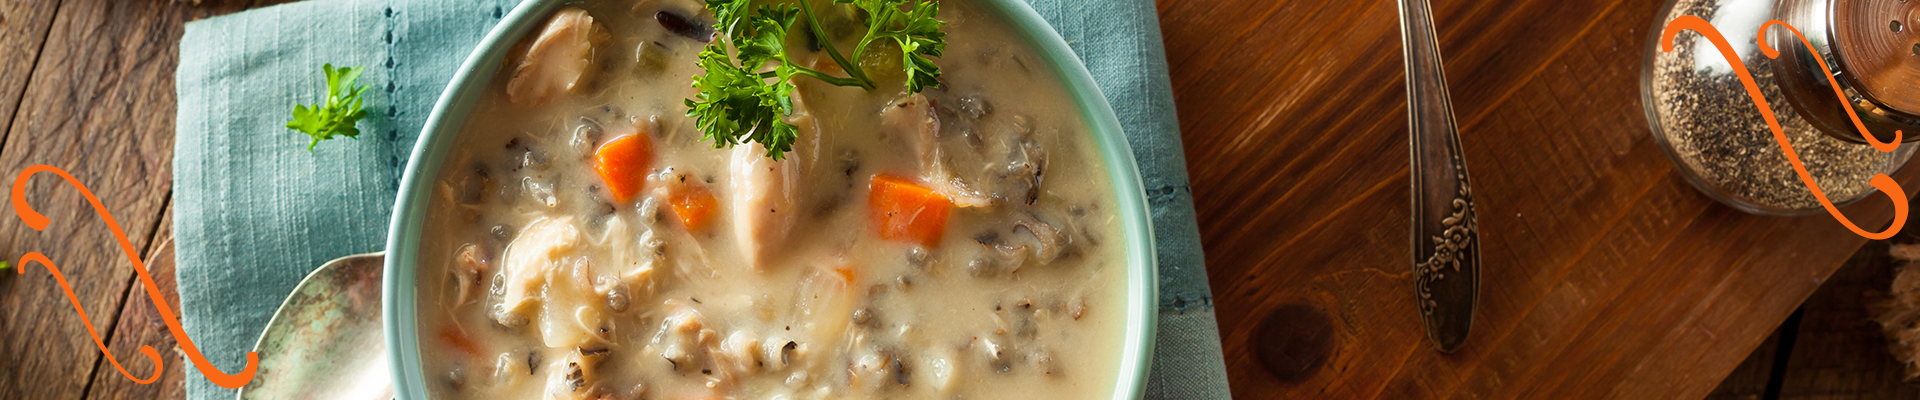 Wild rice and chicken soup - an easy wintertime recipe to make while RVing